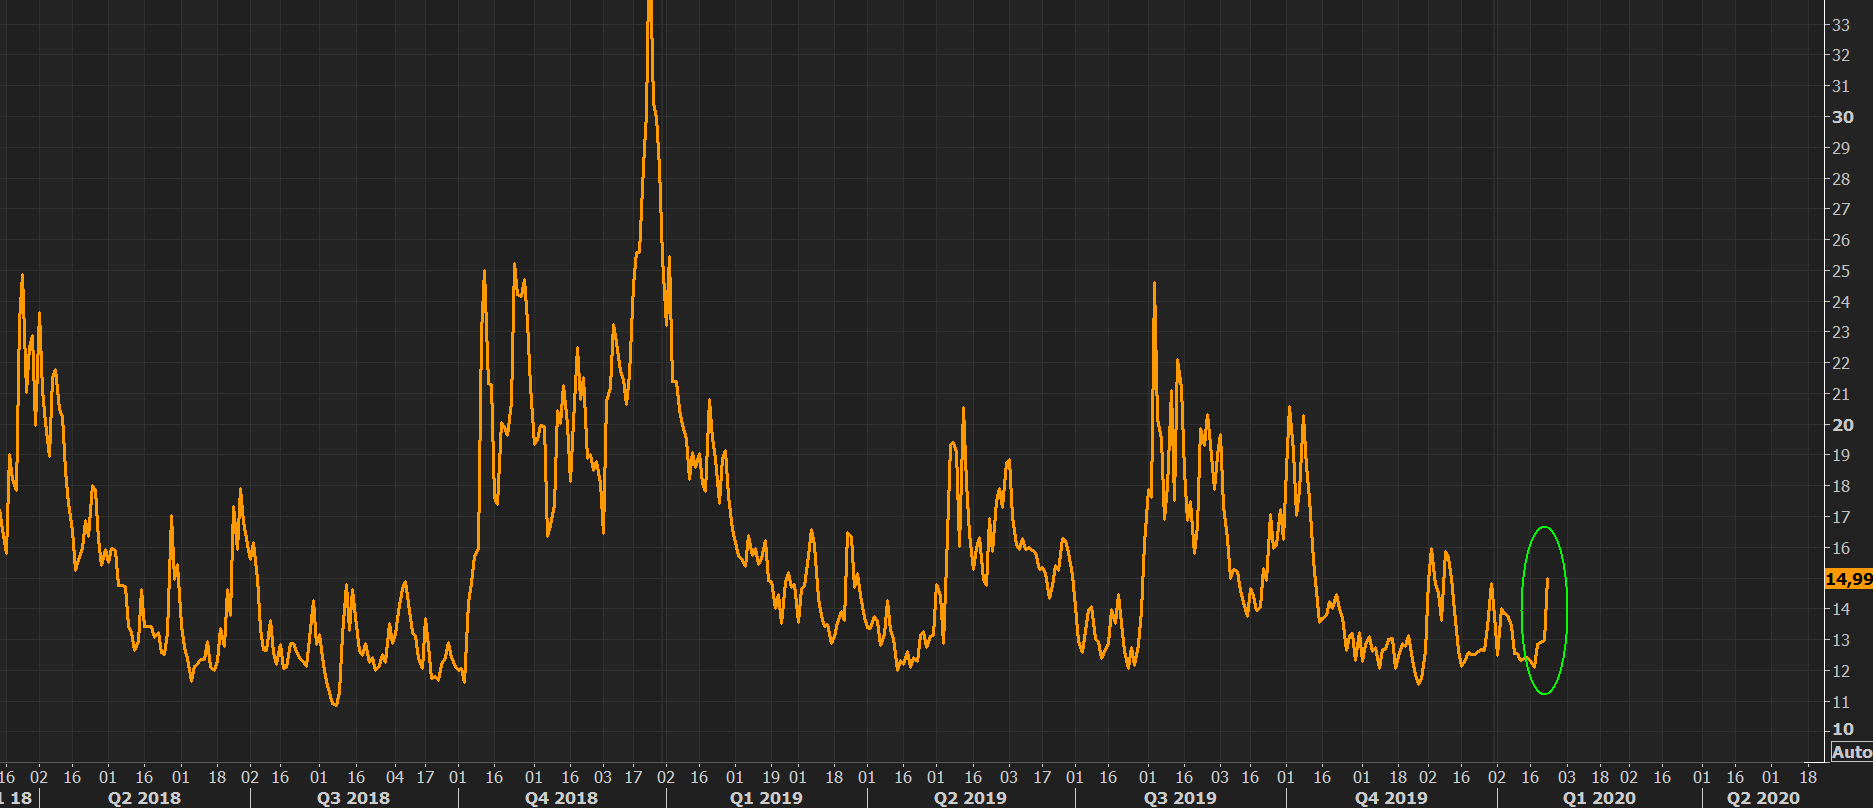 VIX - don't buy protection when you must, buy it while you can